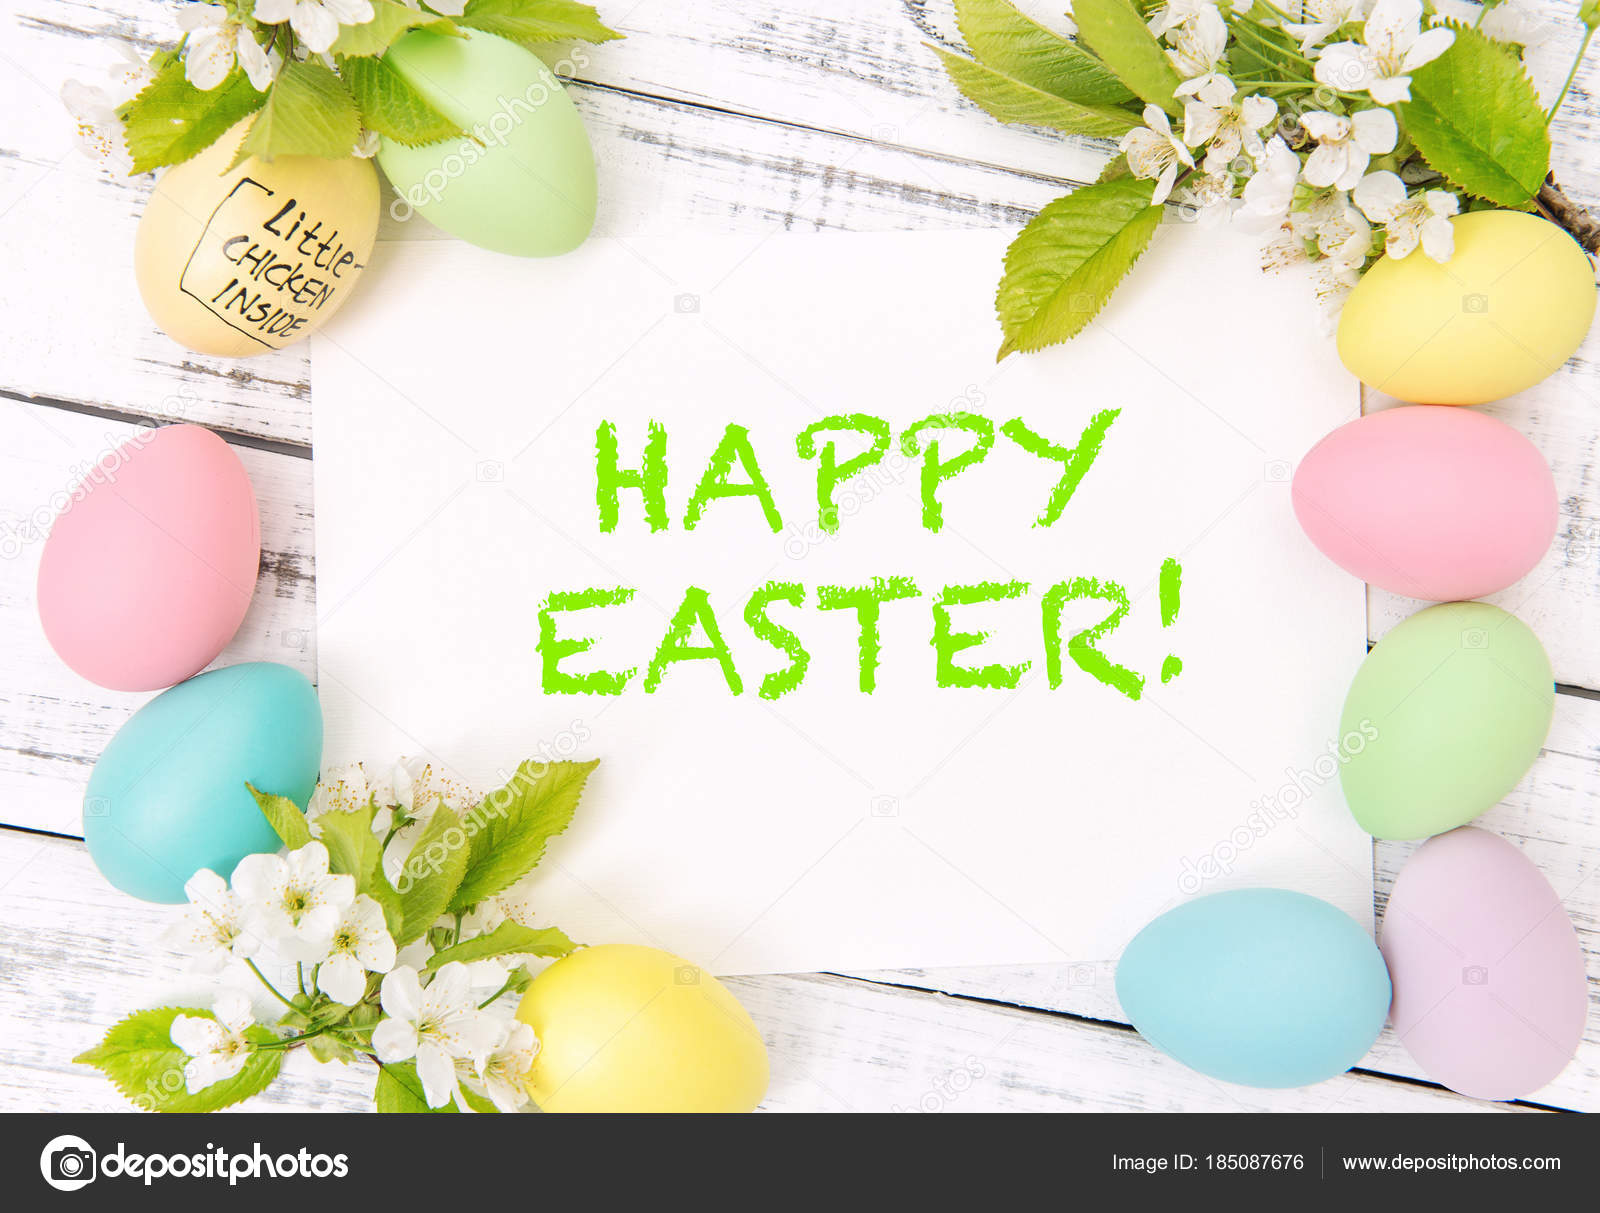 Easter greetings card eggs decoration spring flowers stock photo easter greetings card eggs decoration spring flowers stock photo kristyandbryce Gallery